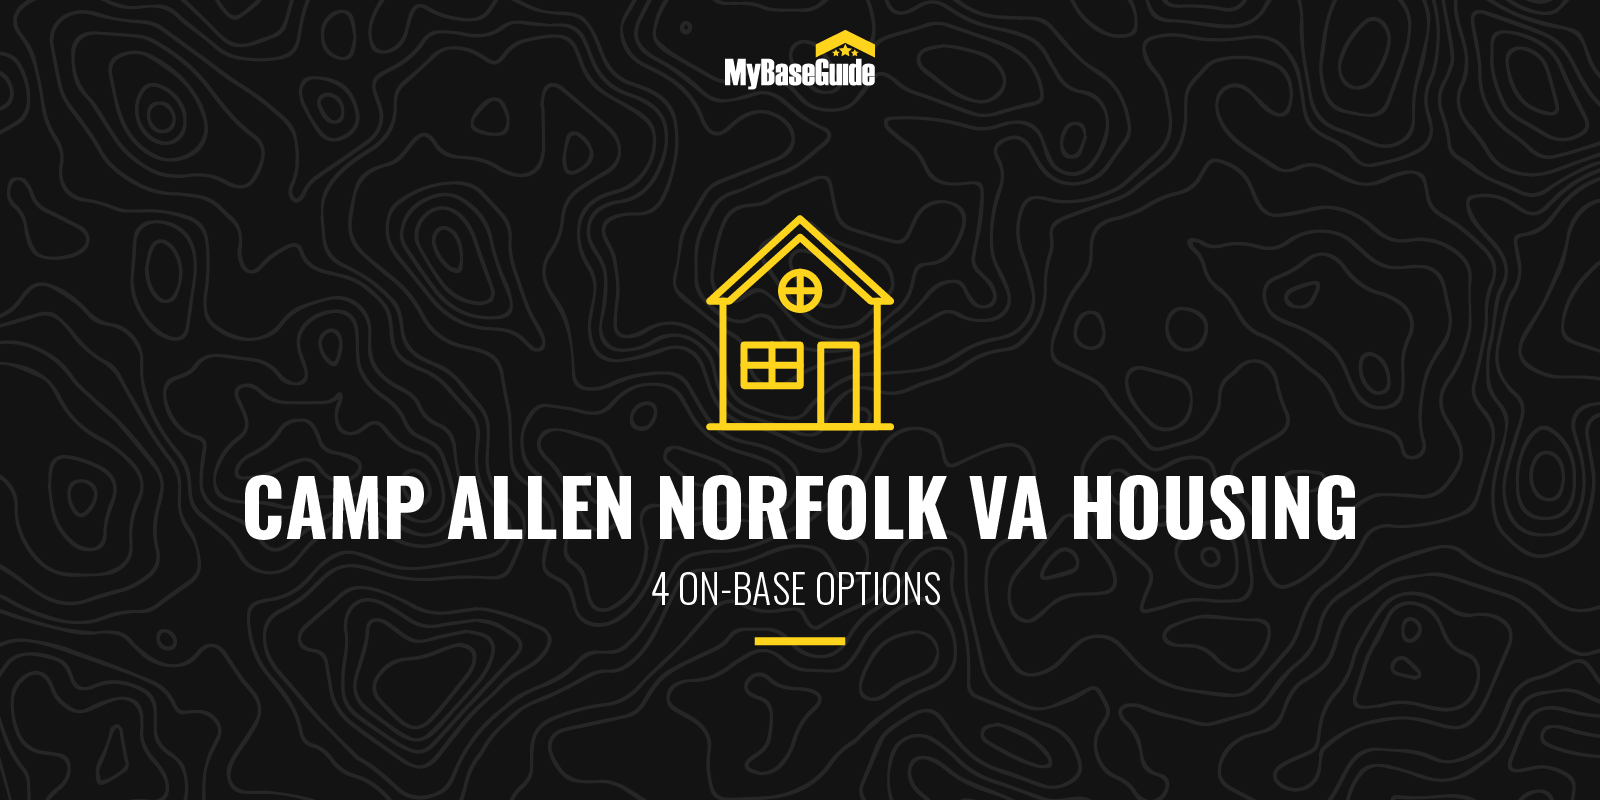 Camp Allen Norfolk VA Housing